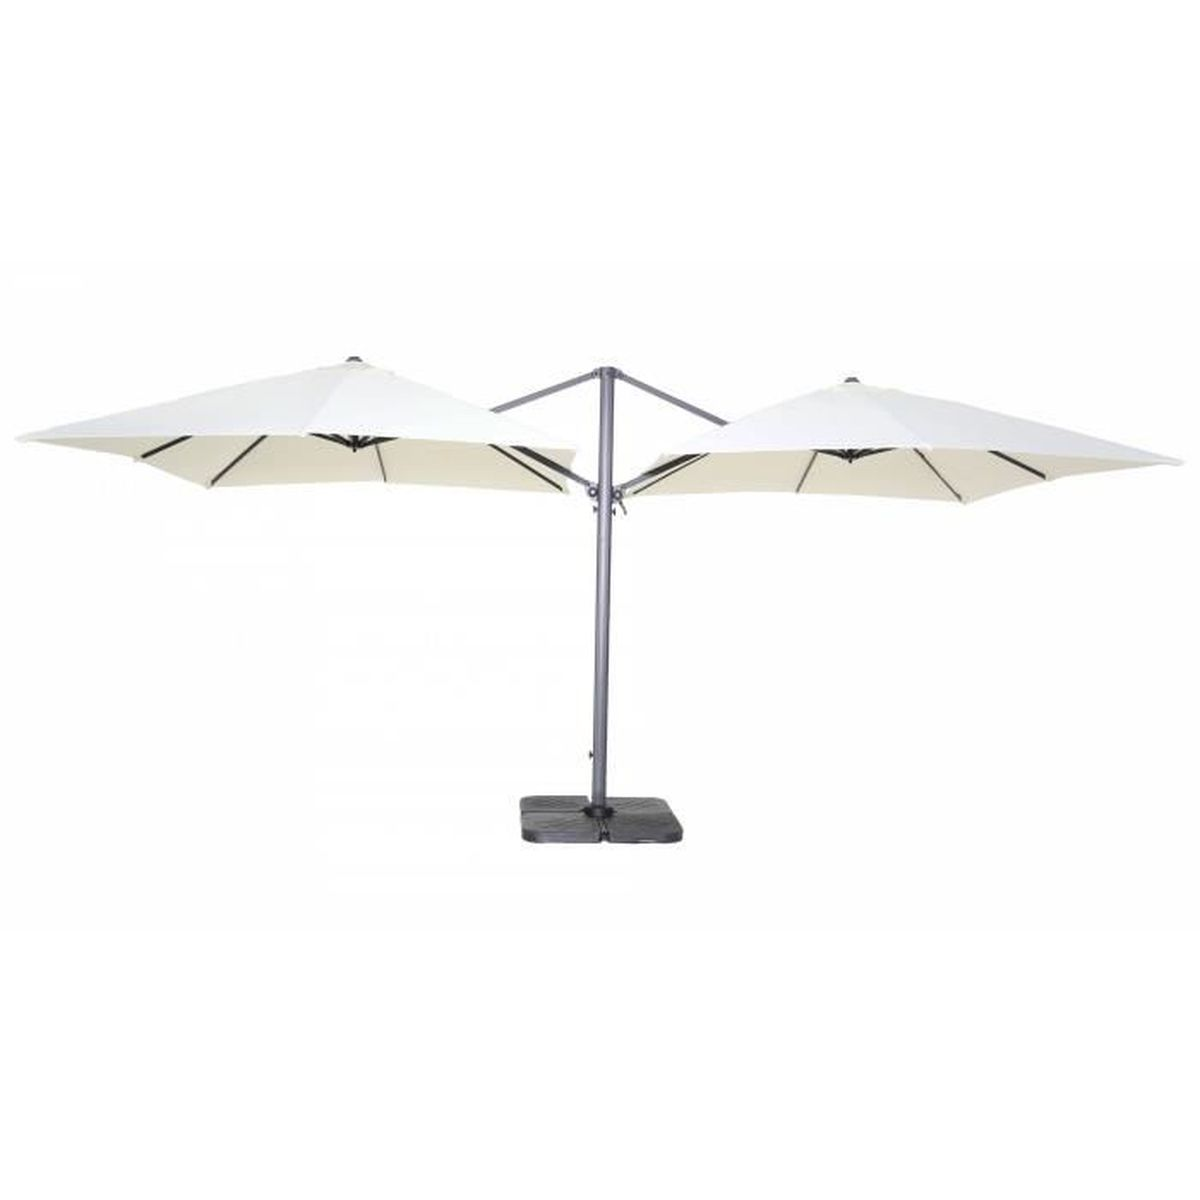 double parasol d port carr en aluminium beige achat vente parasol double parasol d port. Black Bedroom Furniture Sets. Home Design Ideas